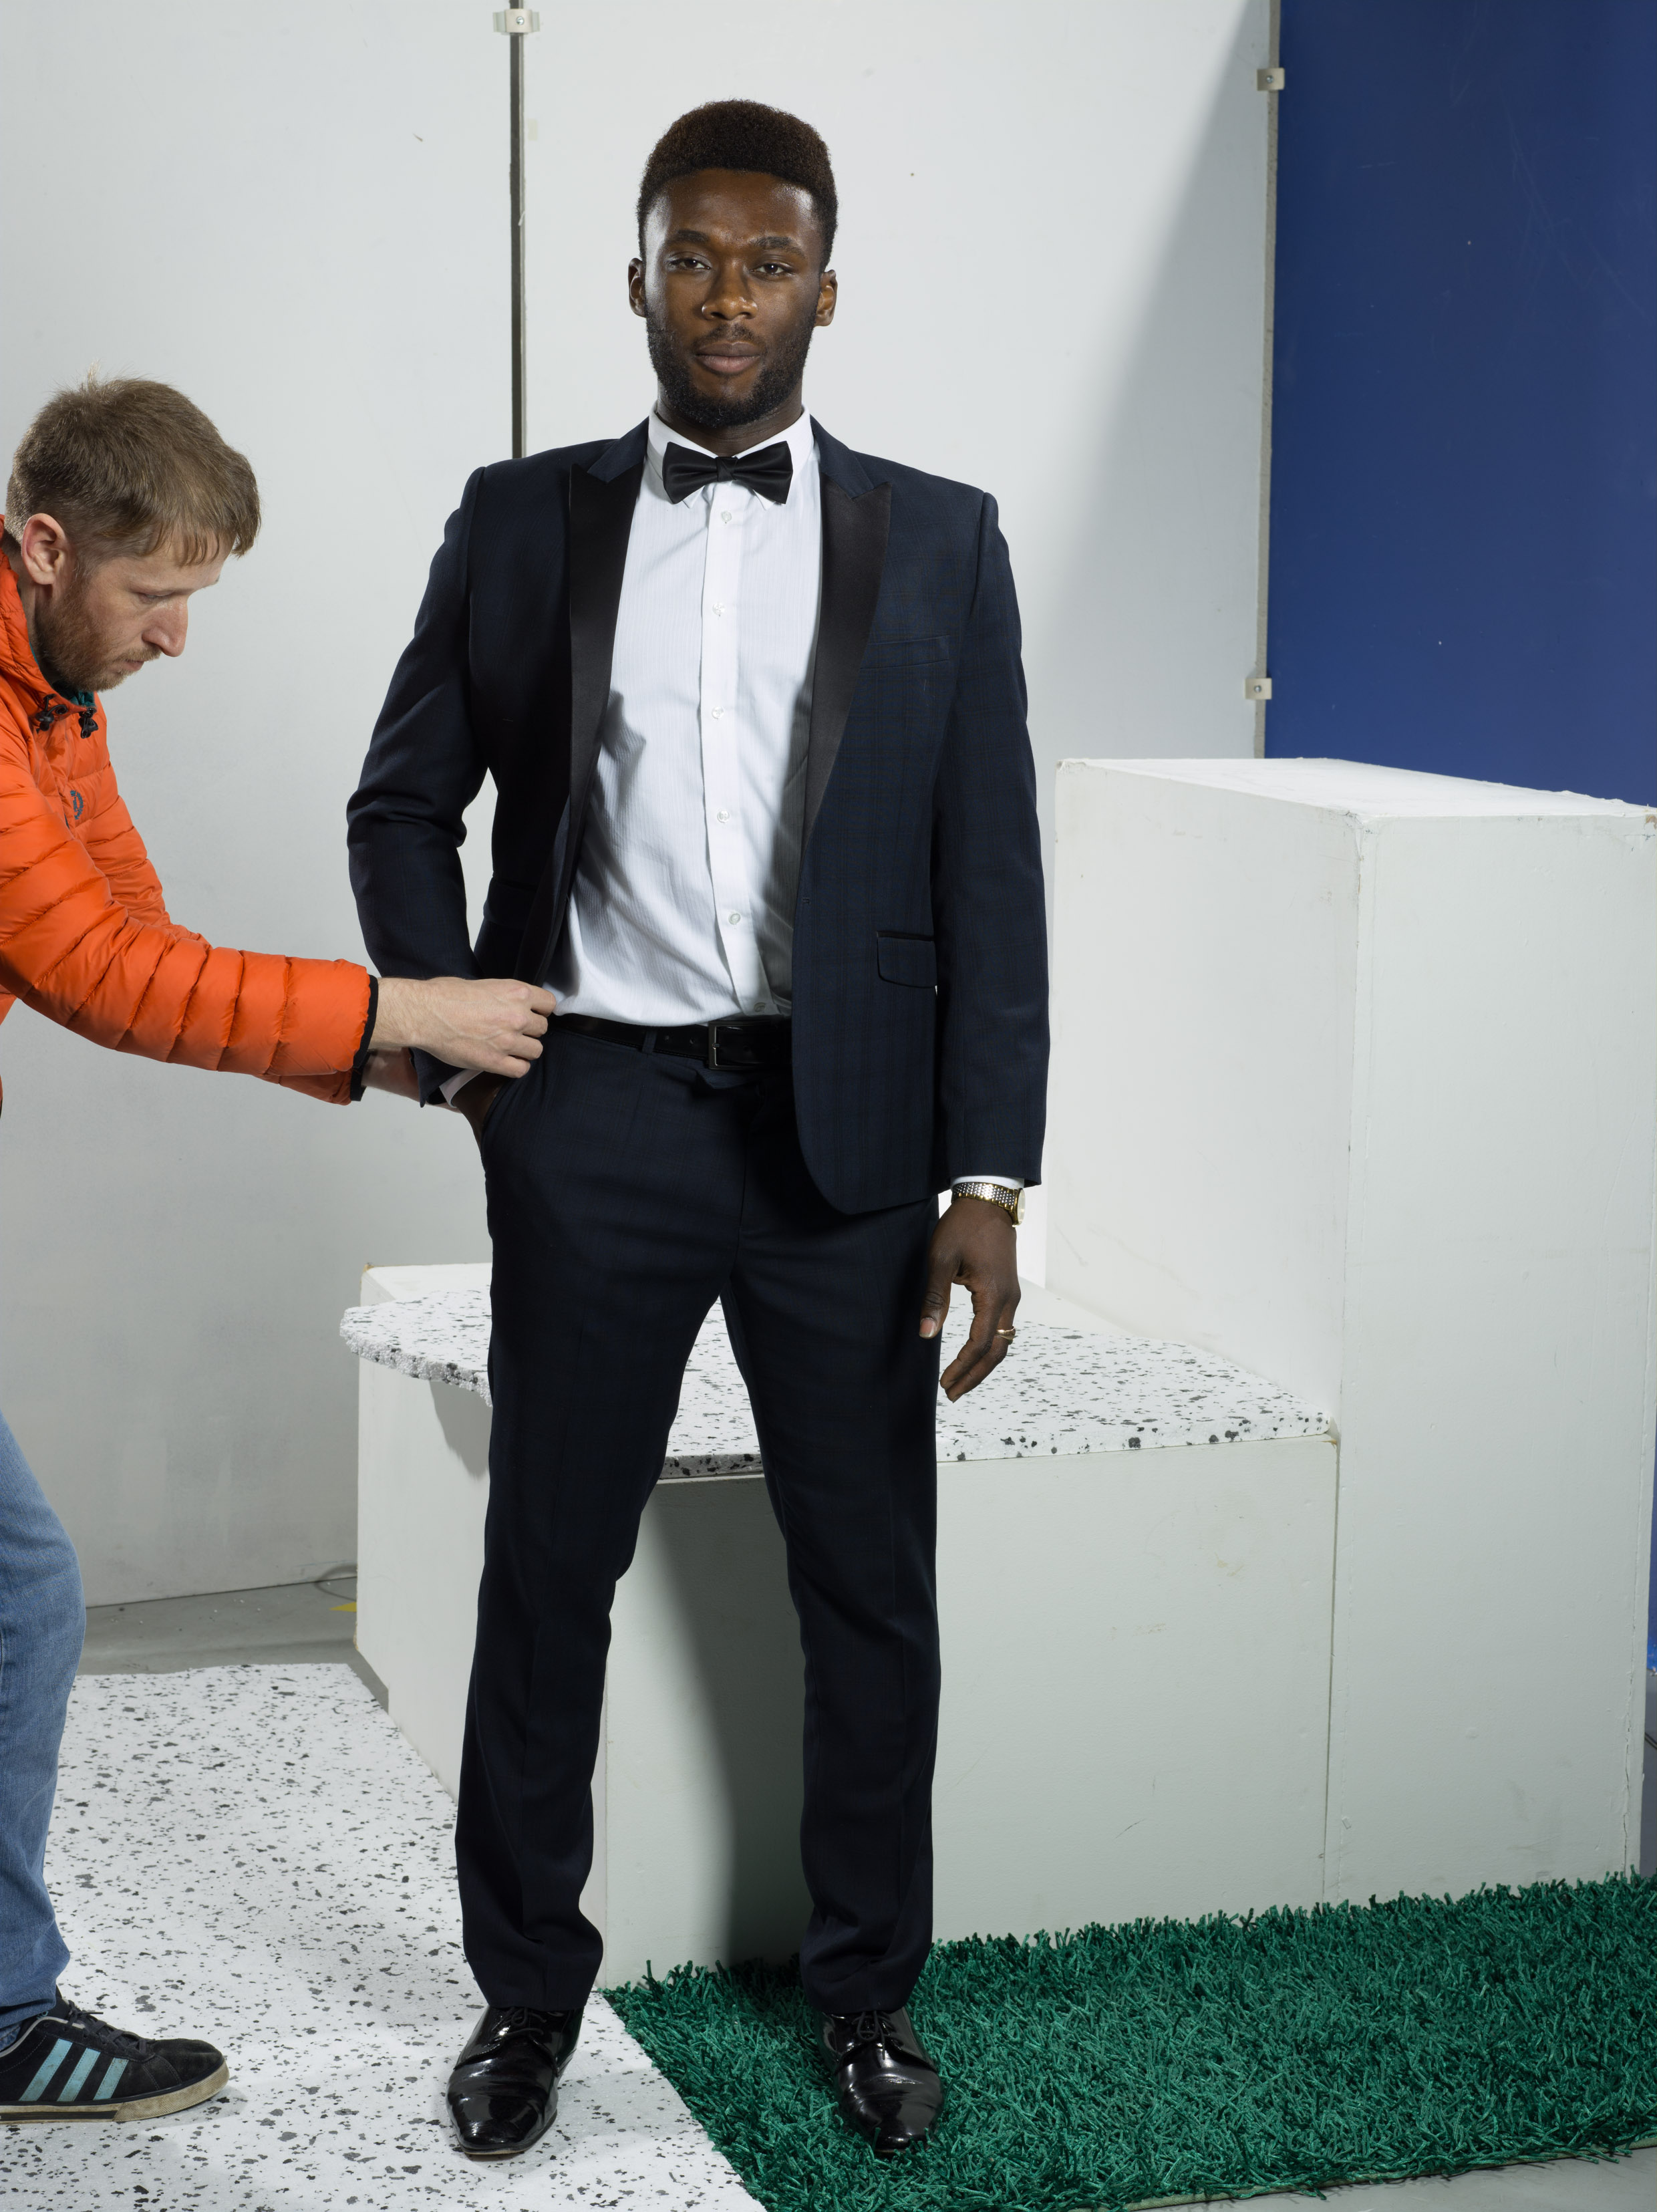 Carl perfecting model Jemal's suit